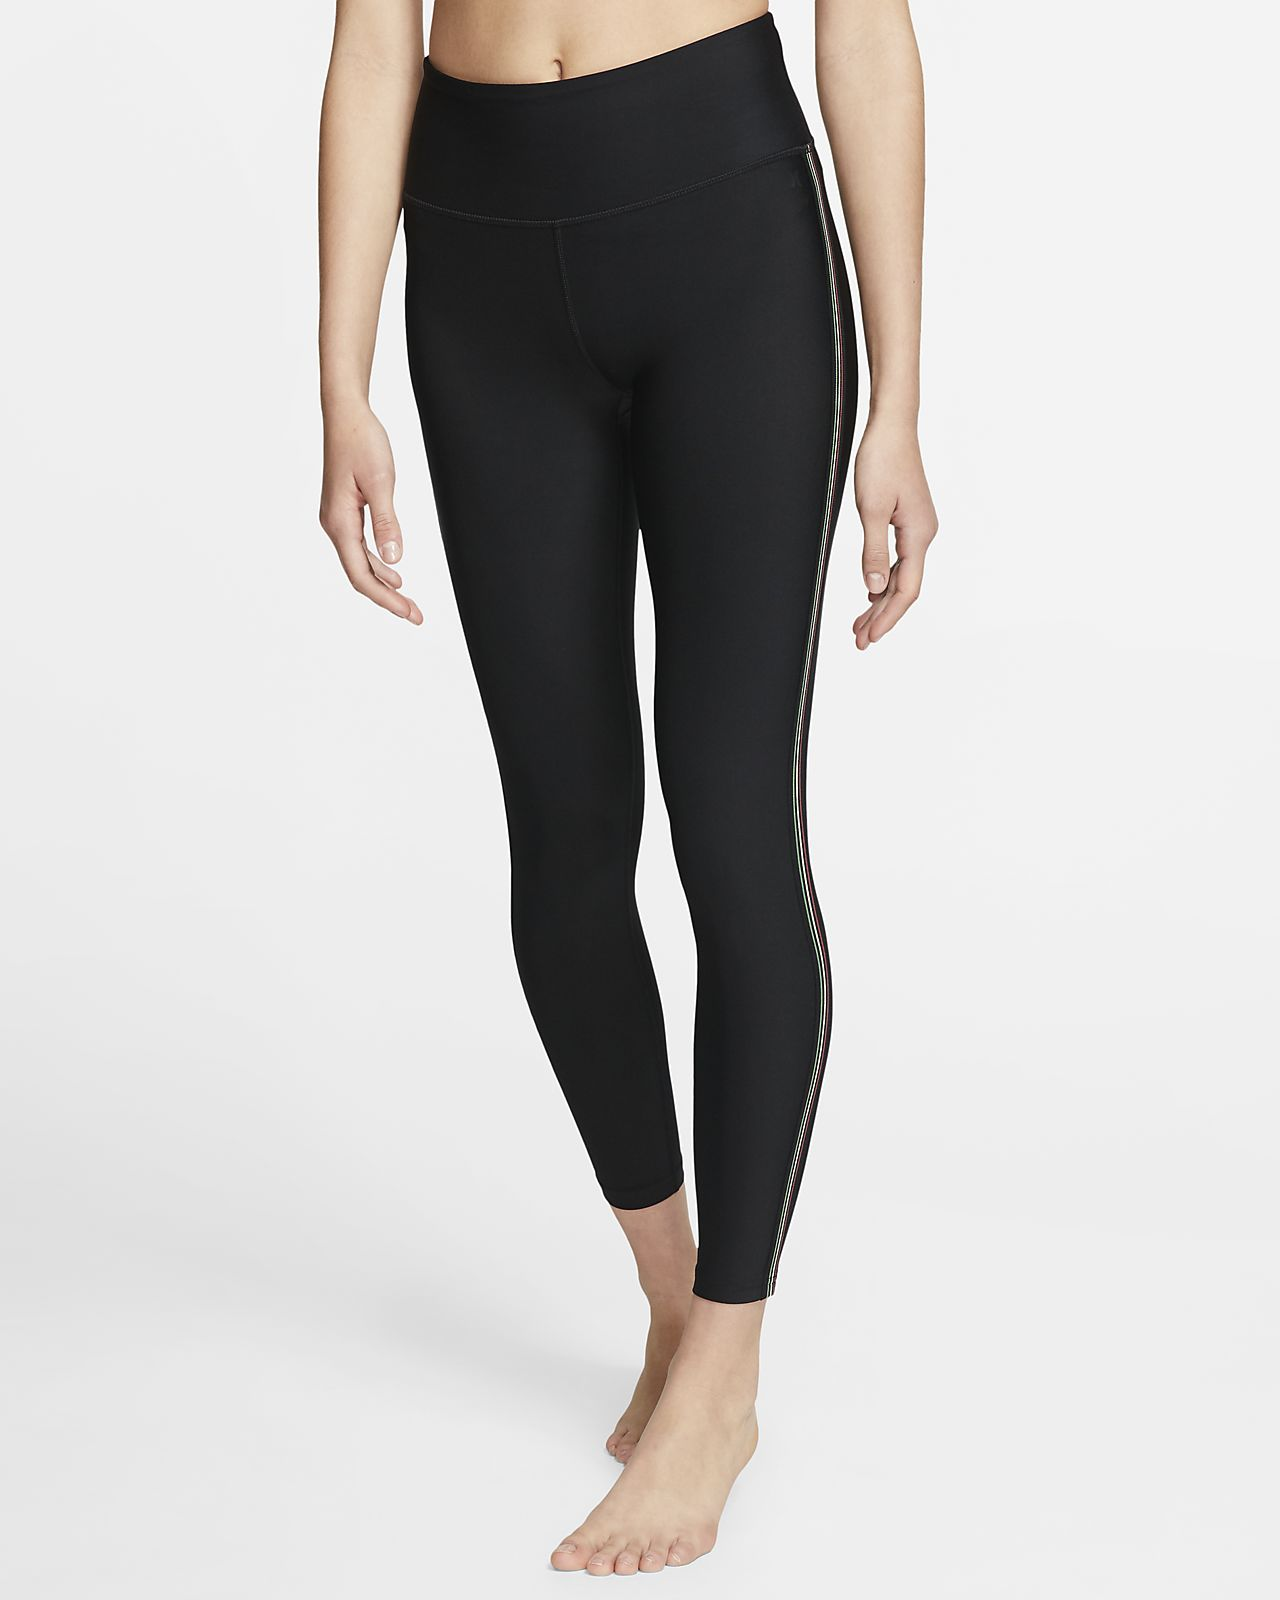 Hurley Quick Dry Jamaica Women's Surf Leggings